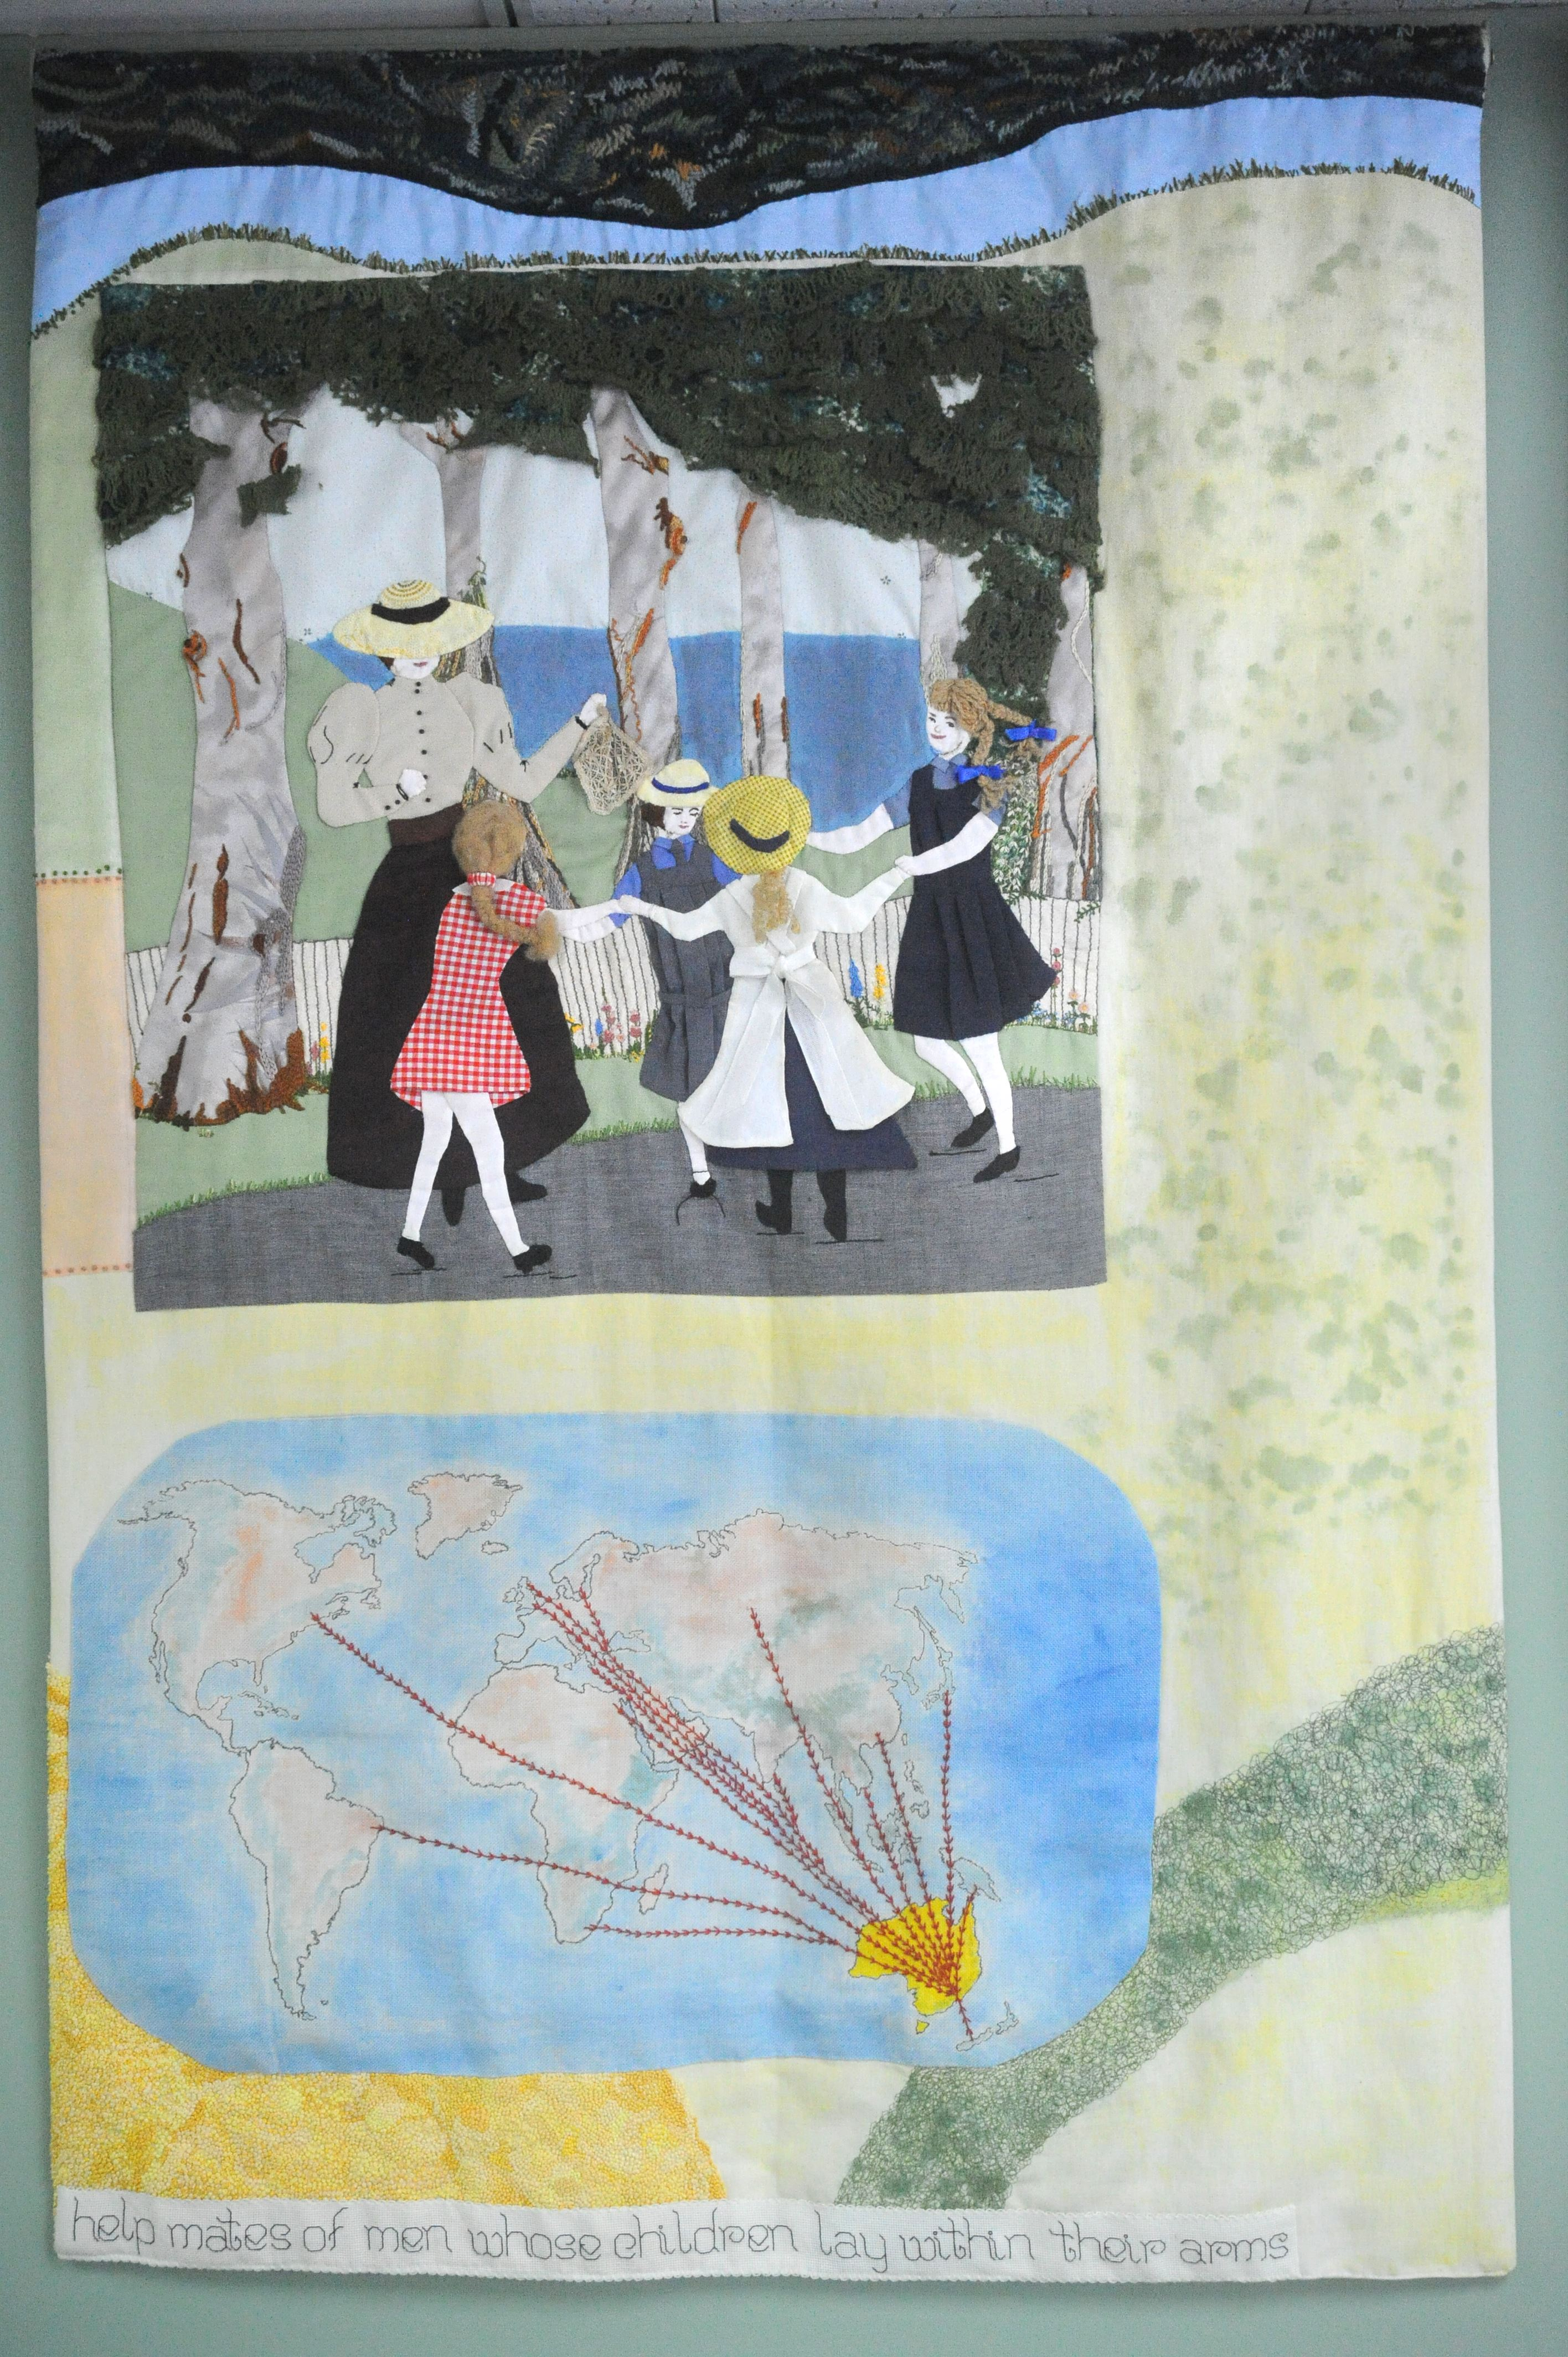 Represents the change over time of Penrith's population, the orchards and trees of the area and the children are wearing fashions from different periods since European settlement.